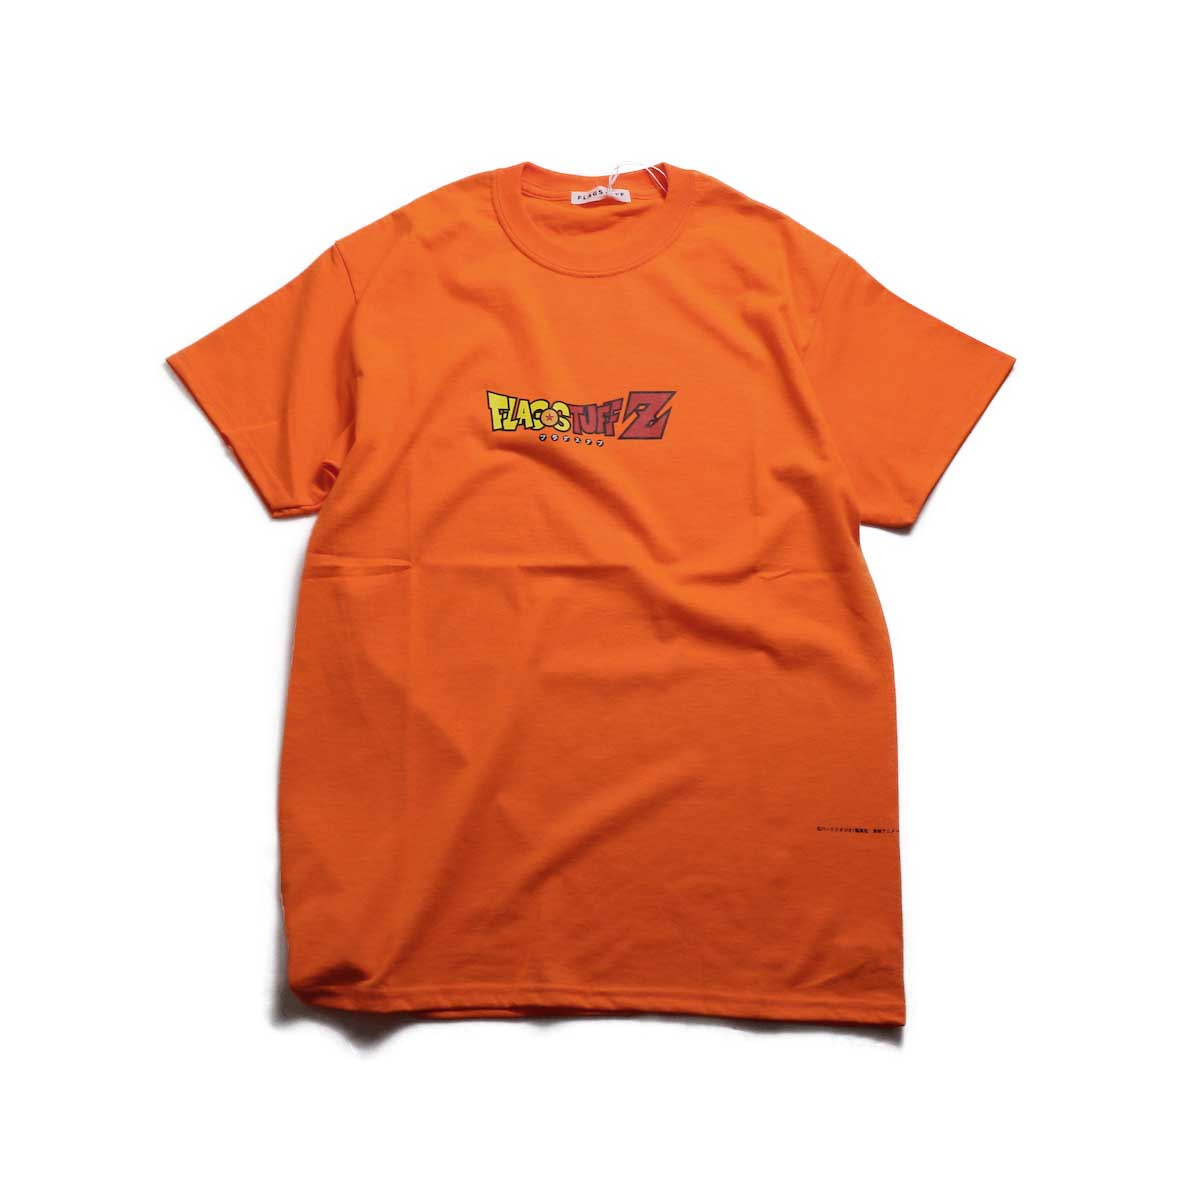 "F-LAGSTUF-F × DRAGON BALL / ""F-LAGSTUF-F Z"" Tee -Orange"